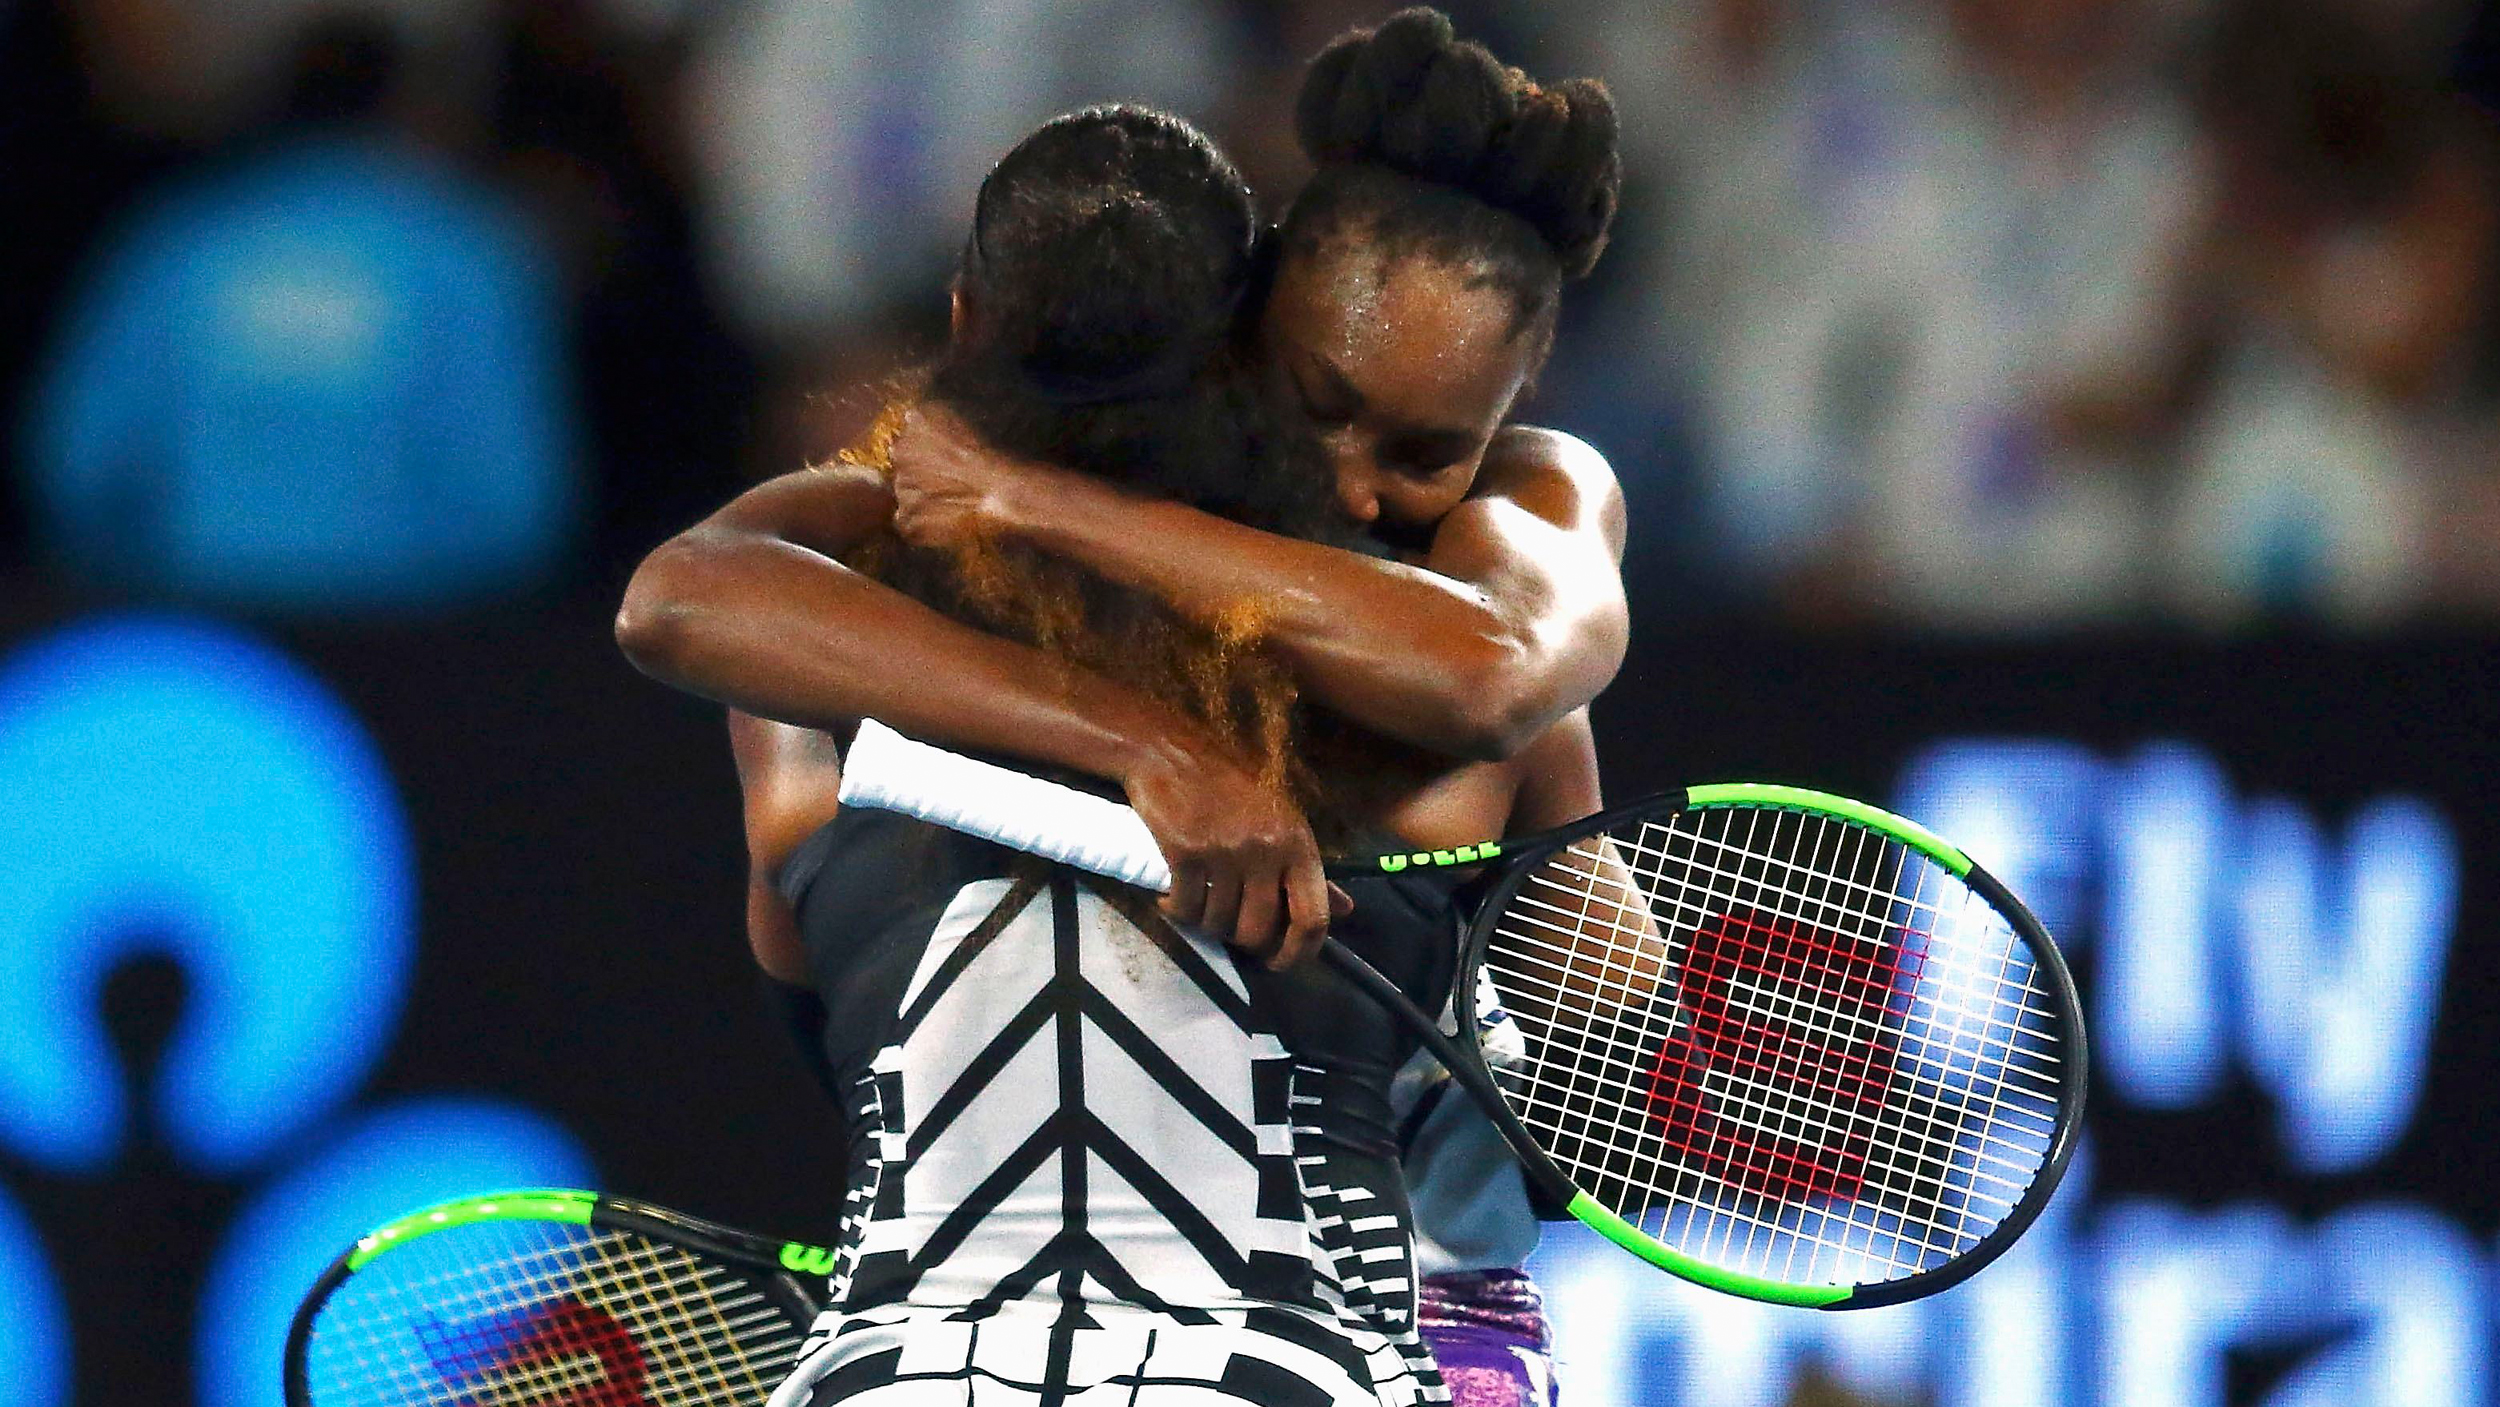 Serena and Venus are the best siblings in sports history